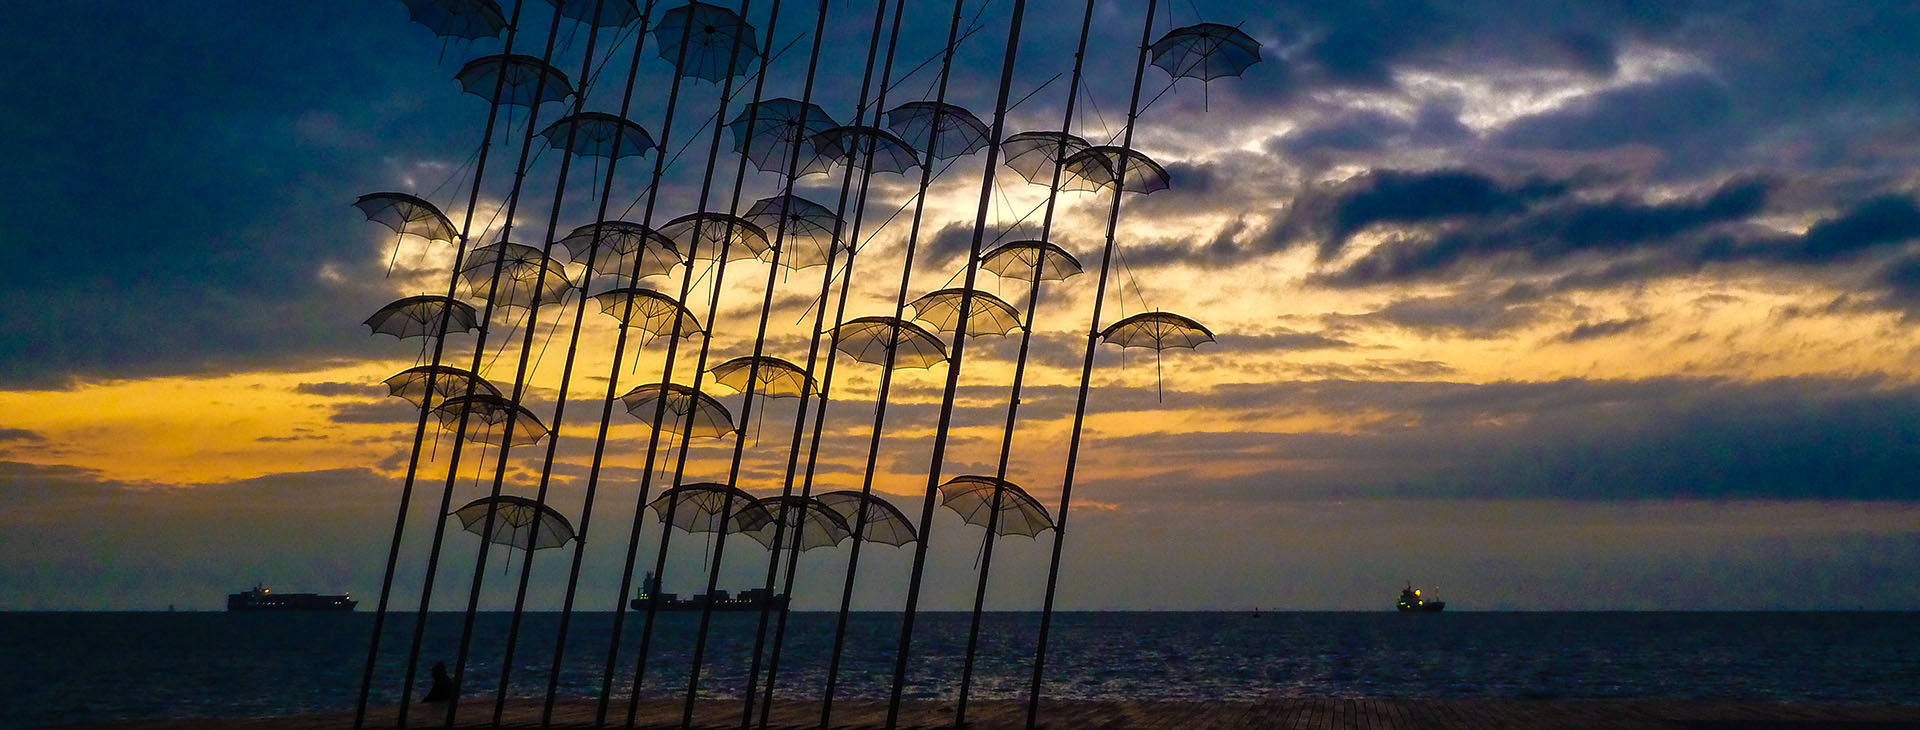 """""""Umbrellas"""" modern art statue during sunset at the seafront of Thessaloniki City"""